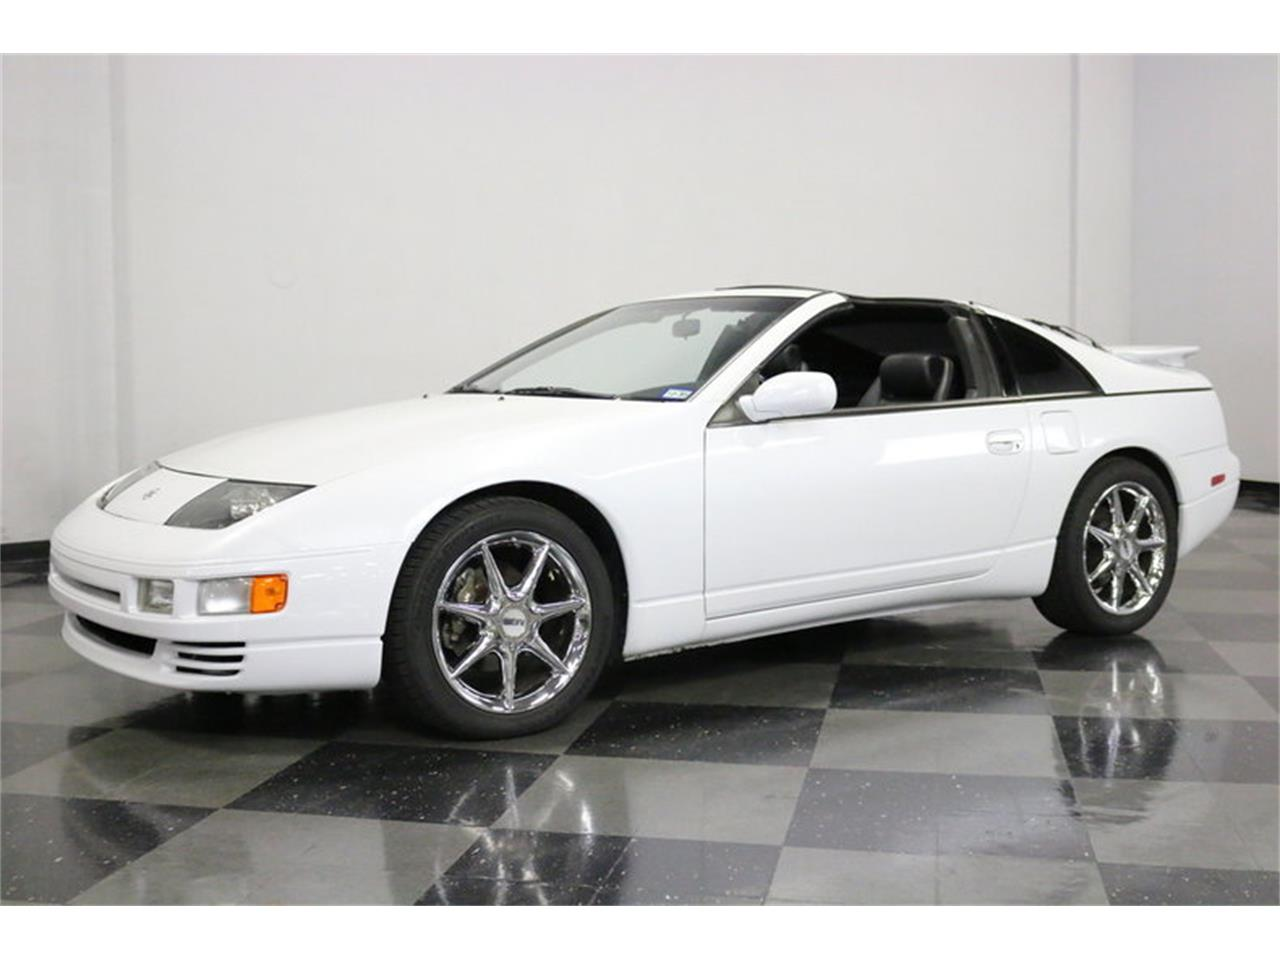 Large Picture of '95 Nissan 300ZX located in Ft Worth Texas - $21,995.00 Offered by Streetside Classics - Dallas / Fort Worth - NIW7